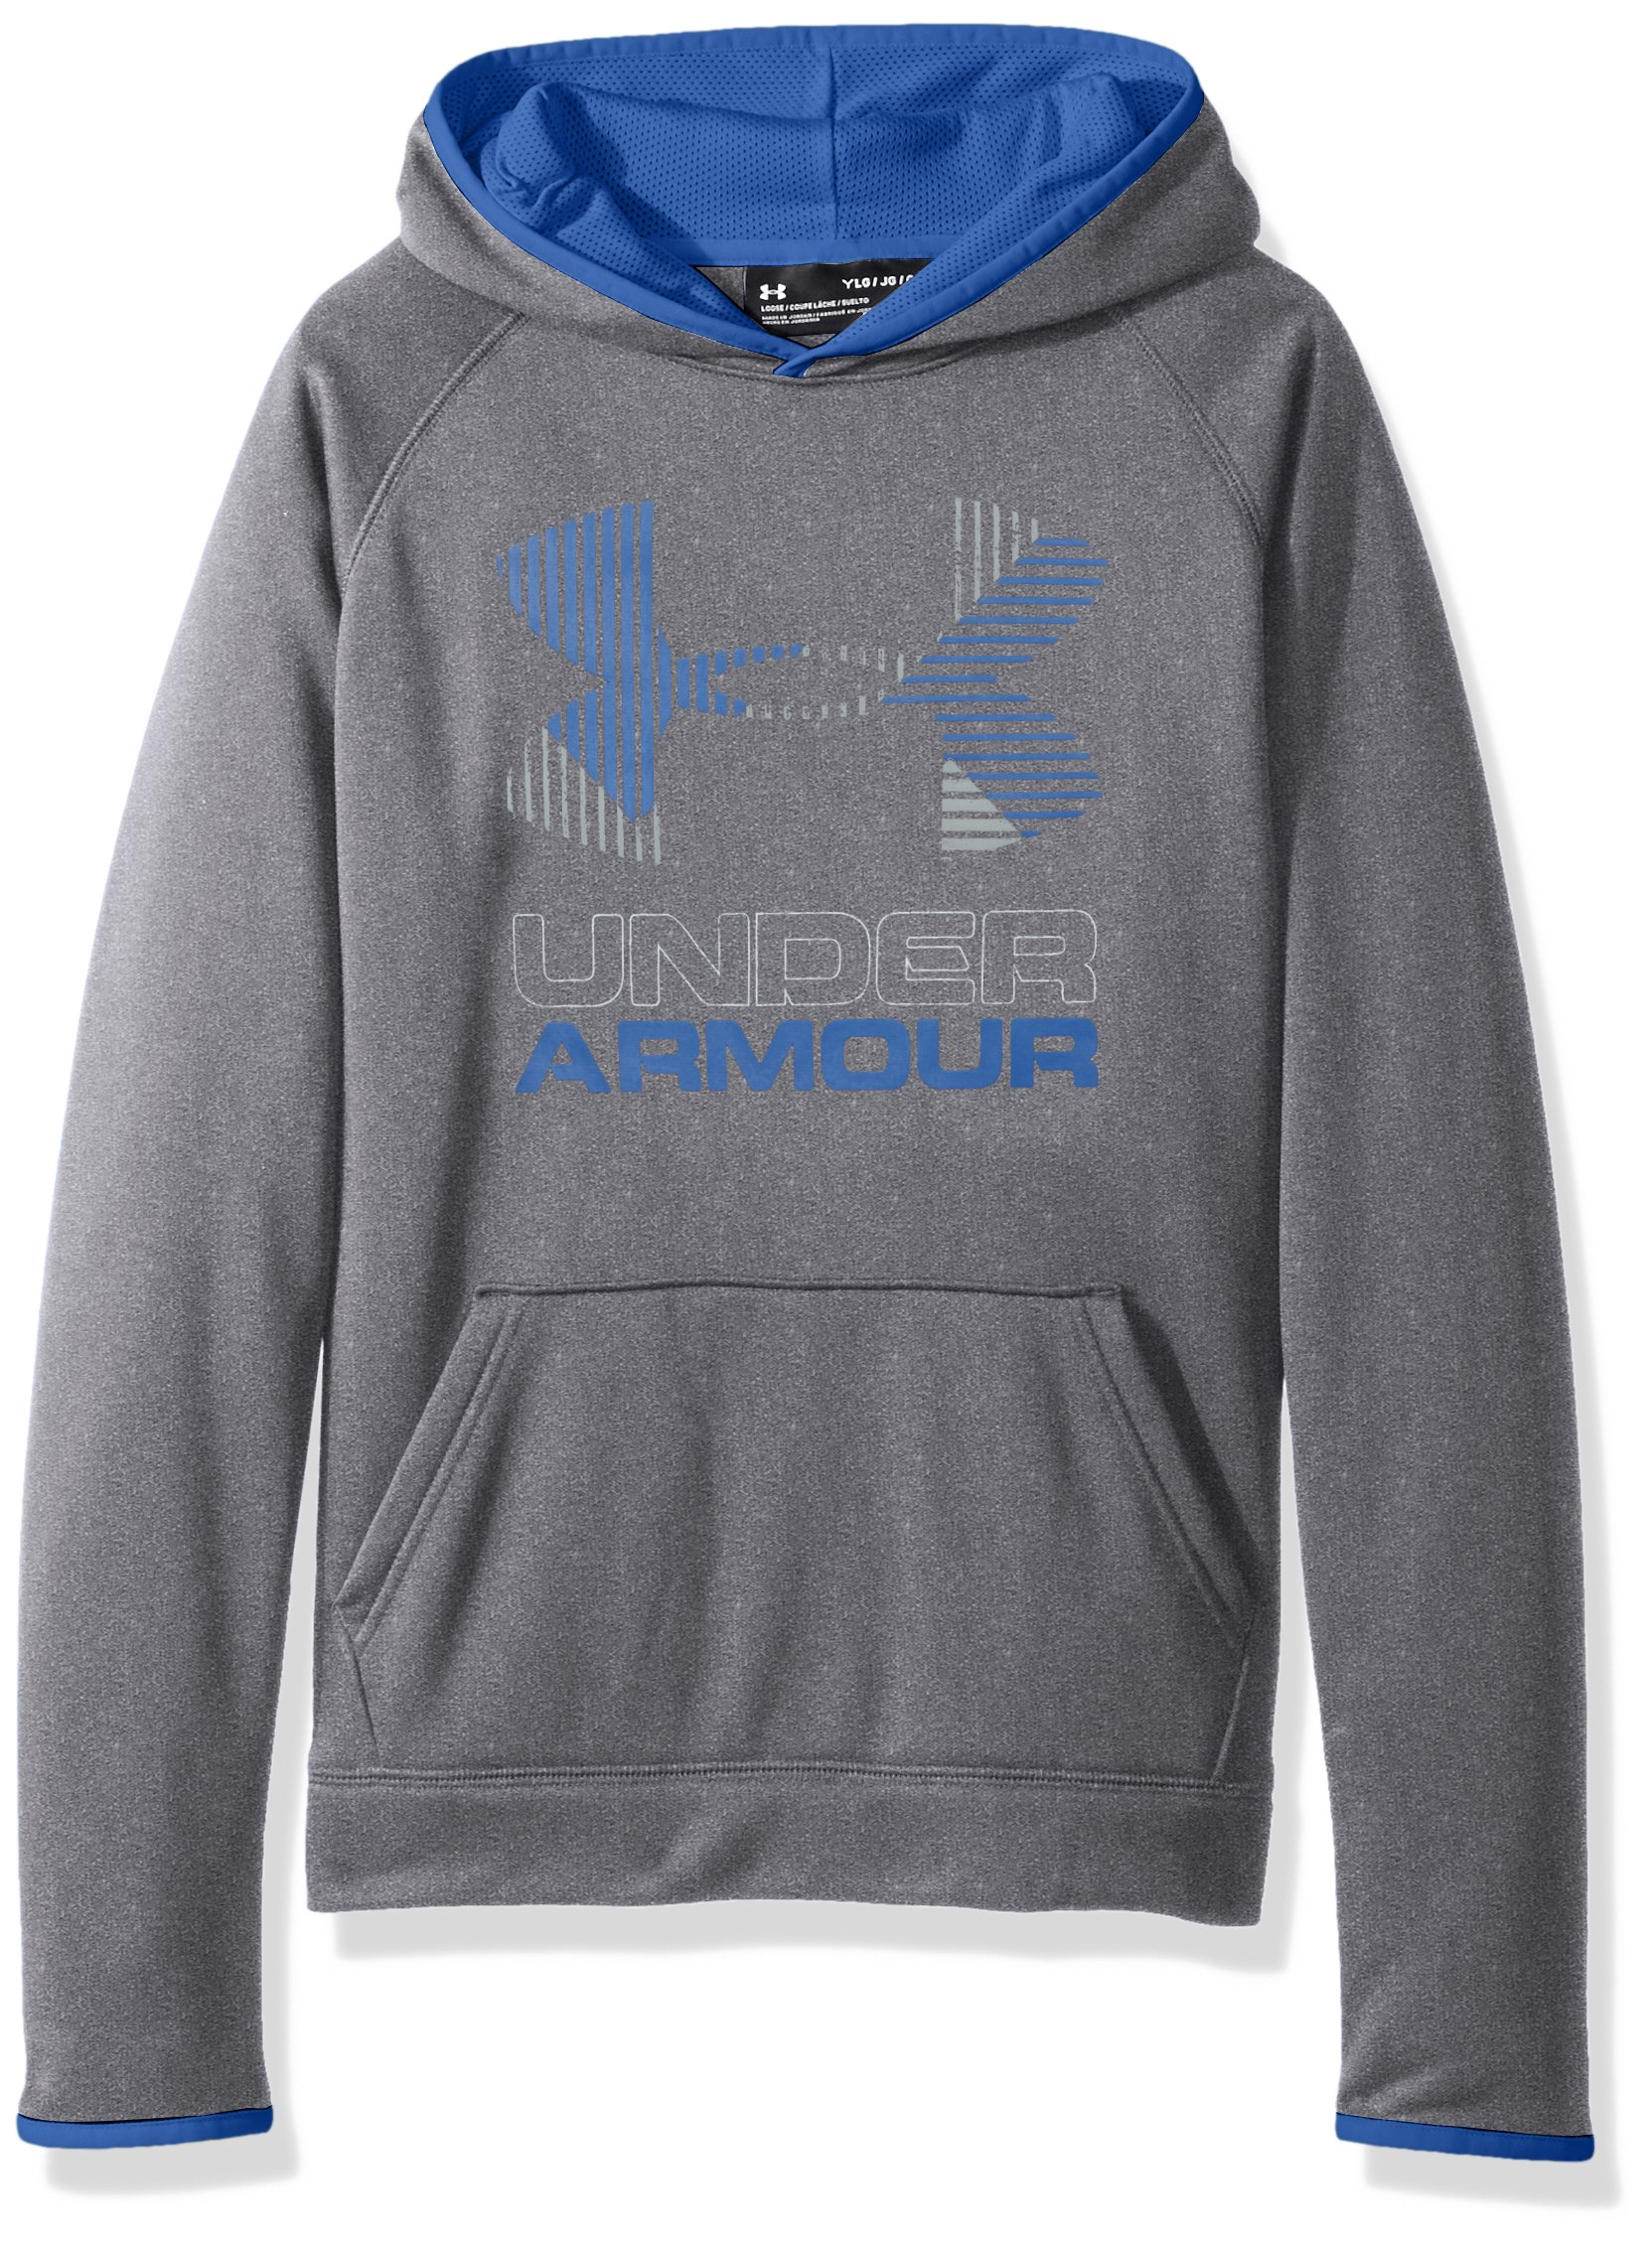 Under Armour Boys SG AF Solid Big Logo Hoodie, Graphite /Overcast Gray, Youth X-Small